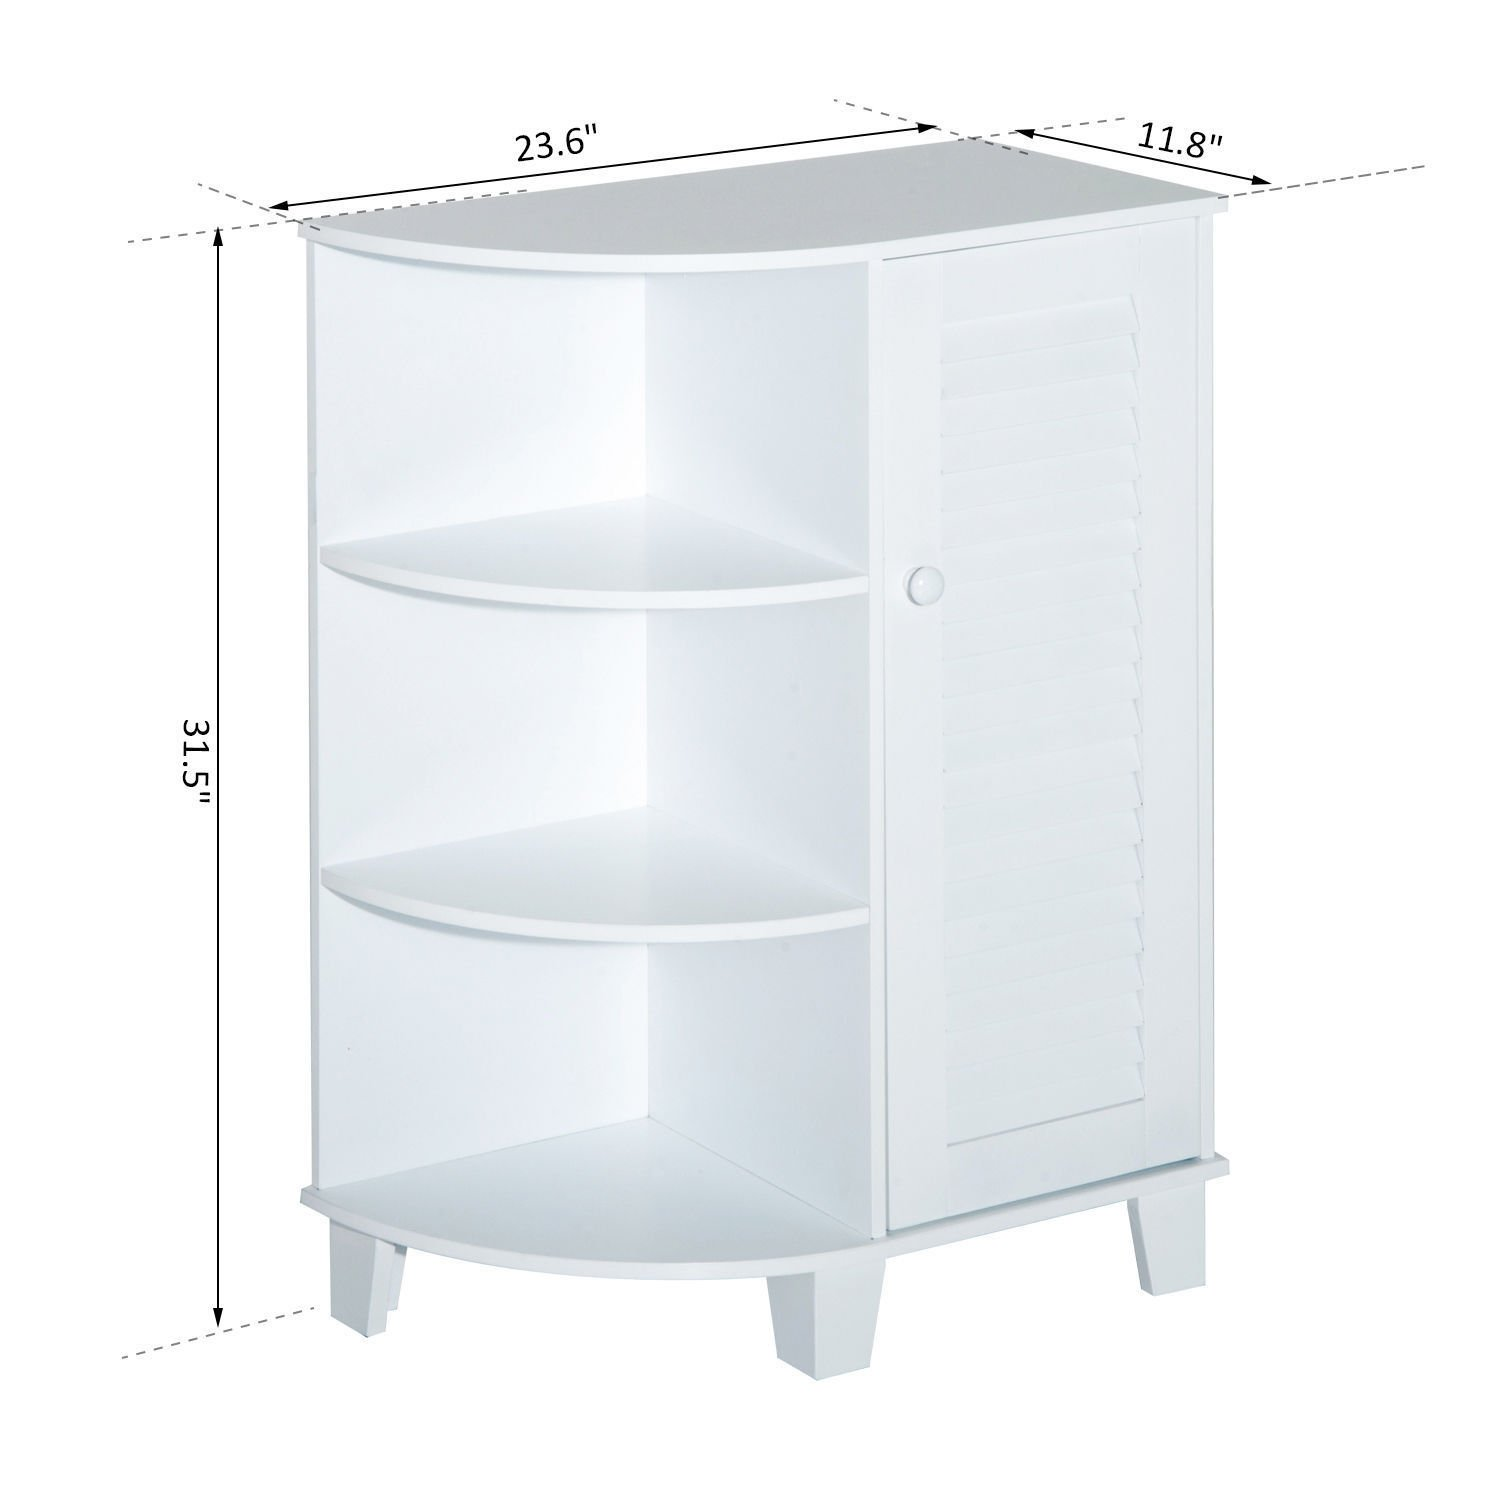 """HOMCOM 32"""" Modern Country Free Standing Bathroom Cabinet Cupboard with Rounded Shelves - White by HOMCOM (Image #7)"""